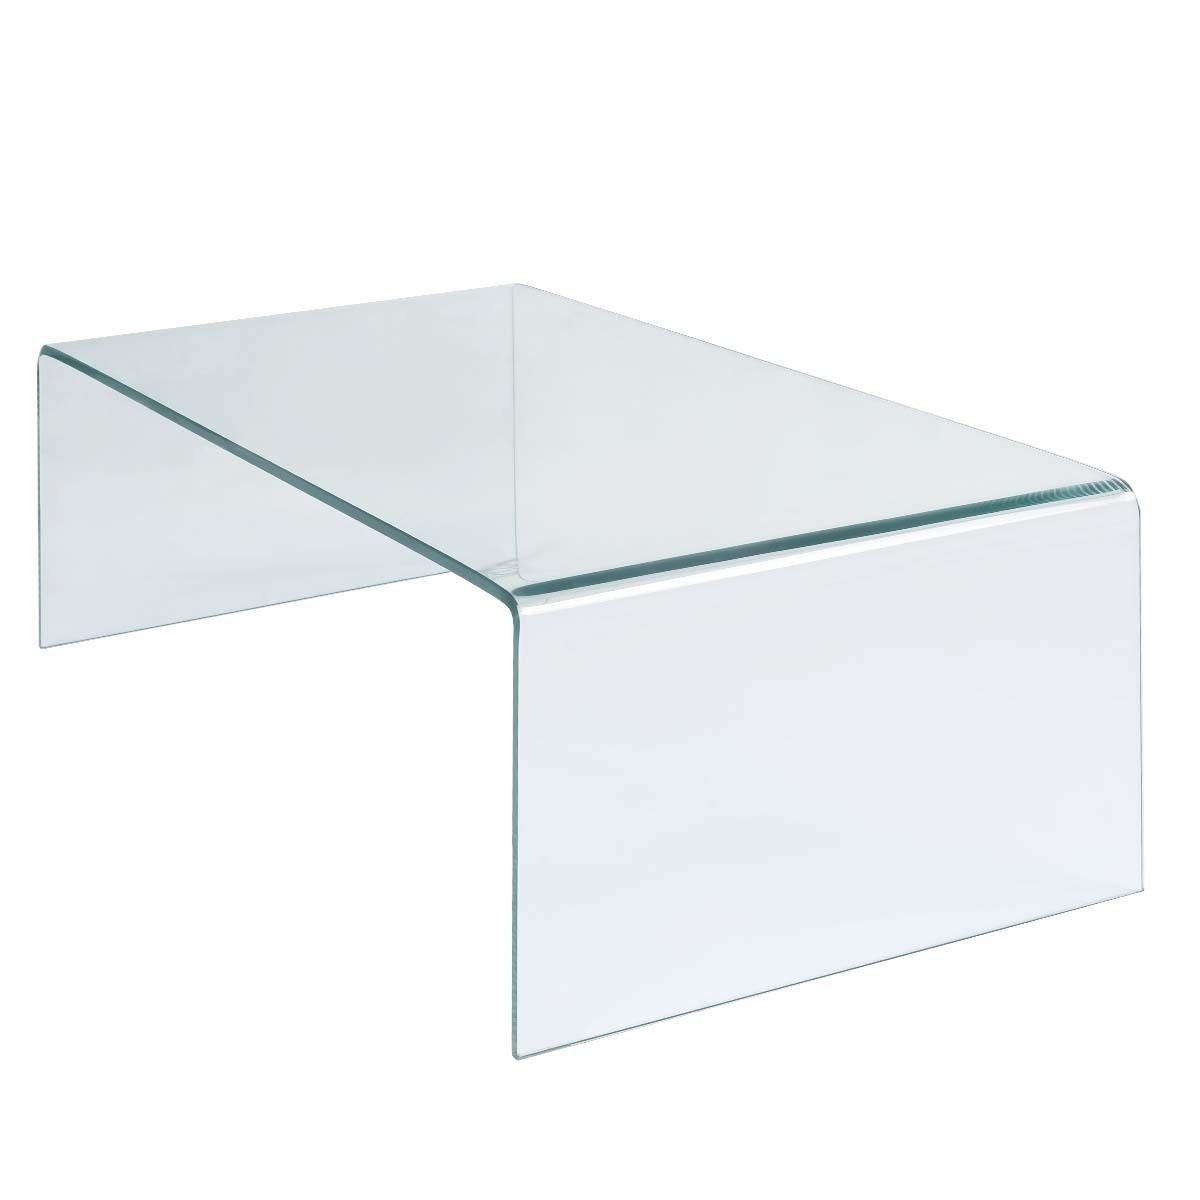 Attractive Amazon.com: Tangkula Coffee Table Tempered Glass Rectangle Cocktail Table  Living Room Furniture: Kitchen U0026 Dining